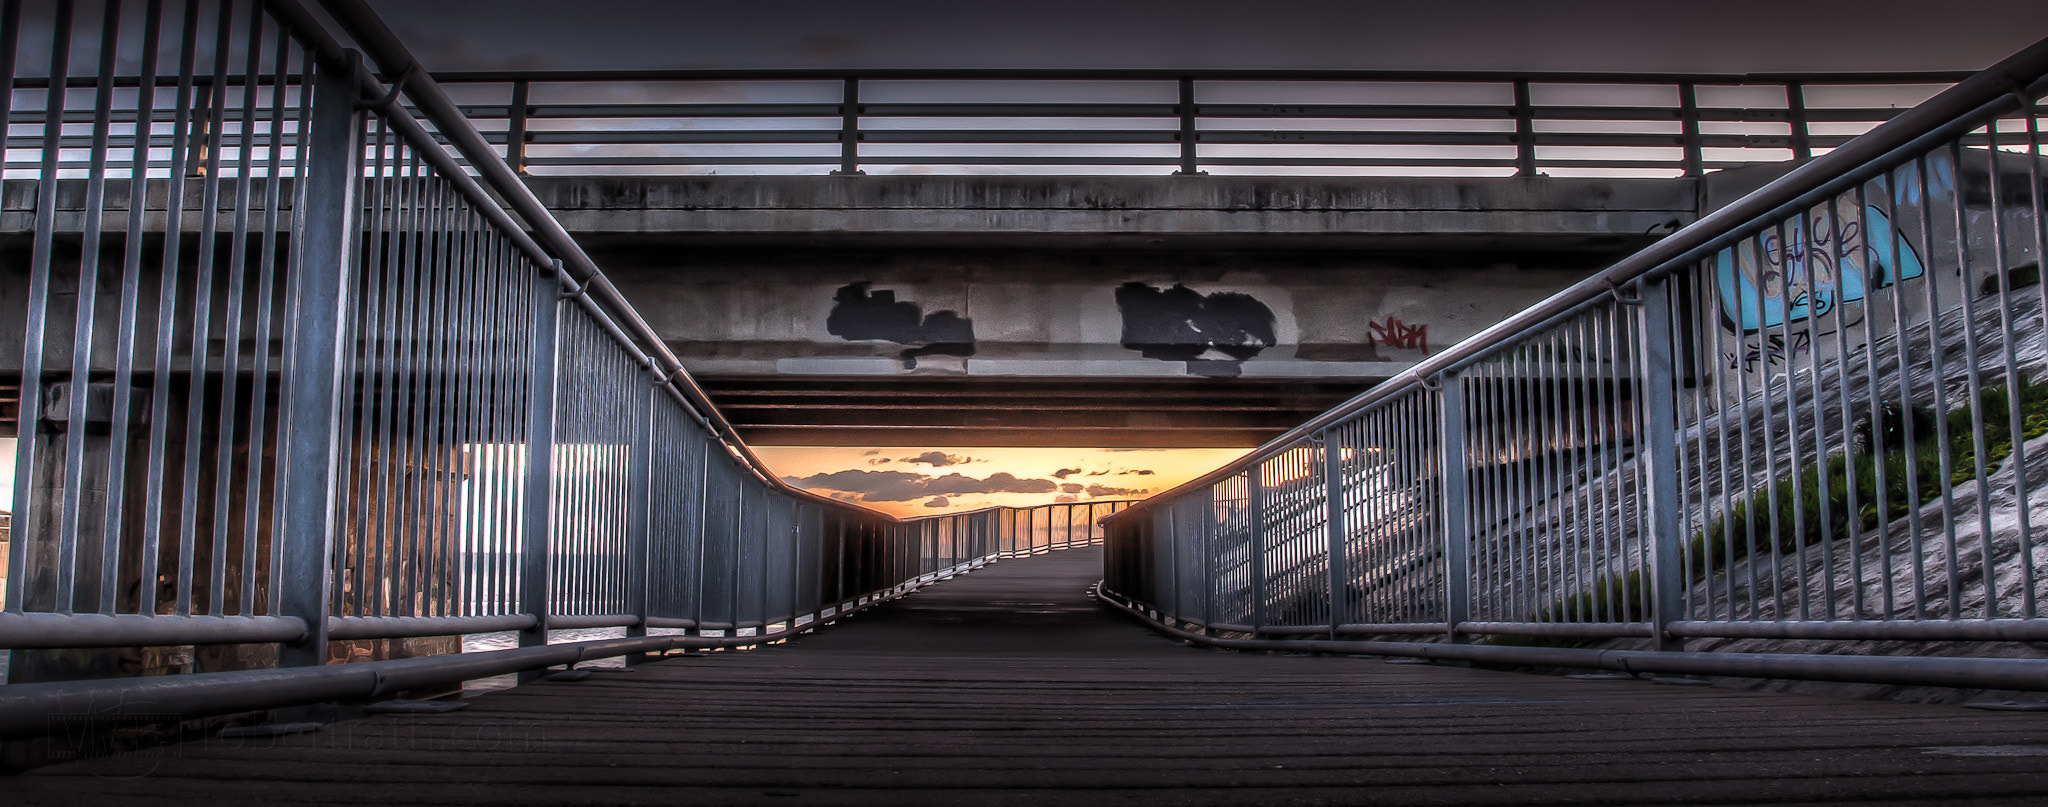 Photograph 366 Days of 2012, Day 200 - Beyond Concrete and Steel by Robert Rath on 500px